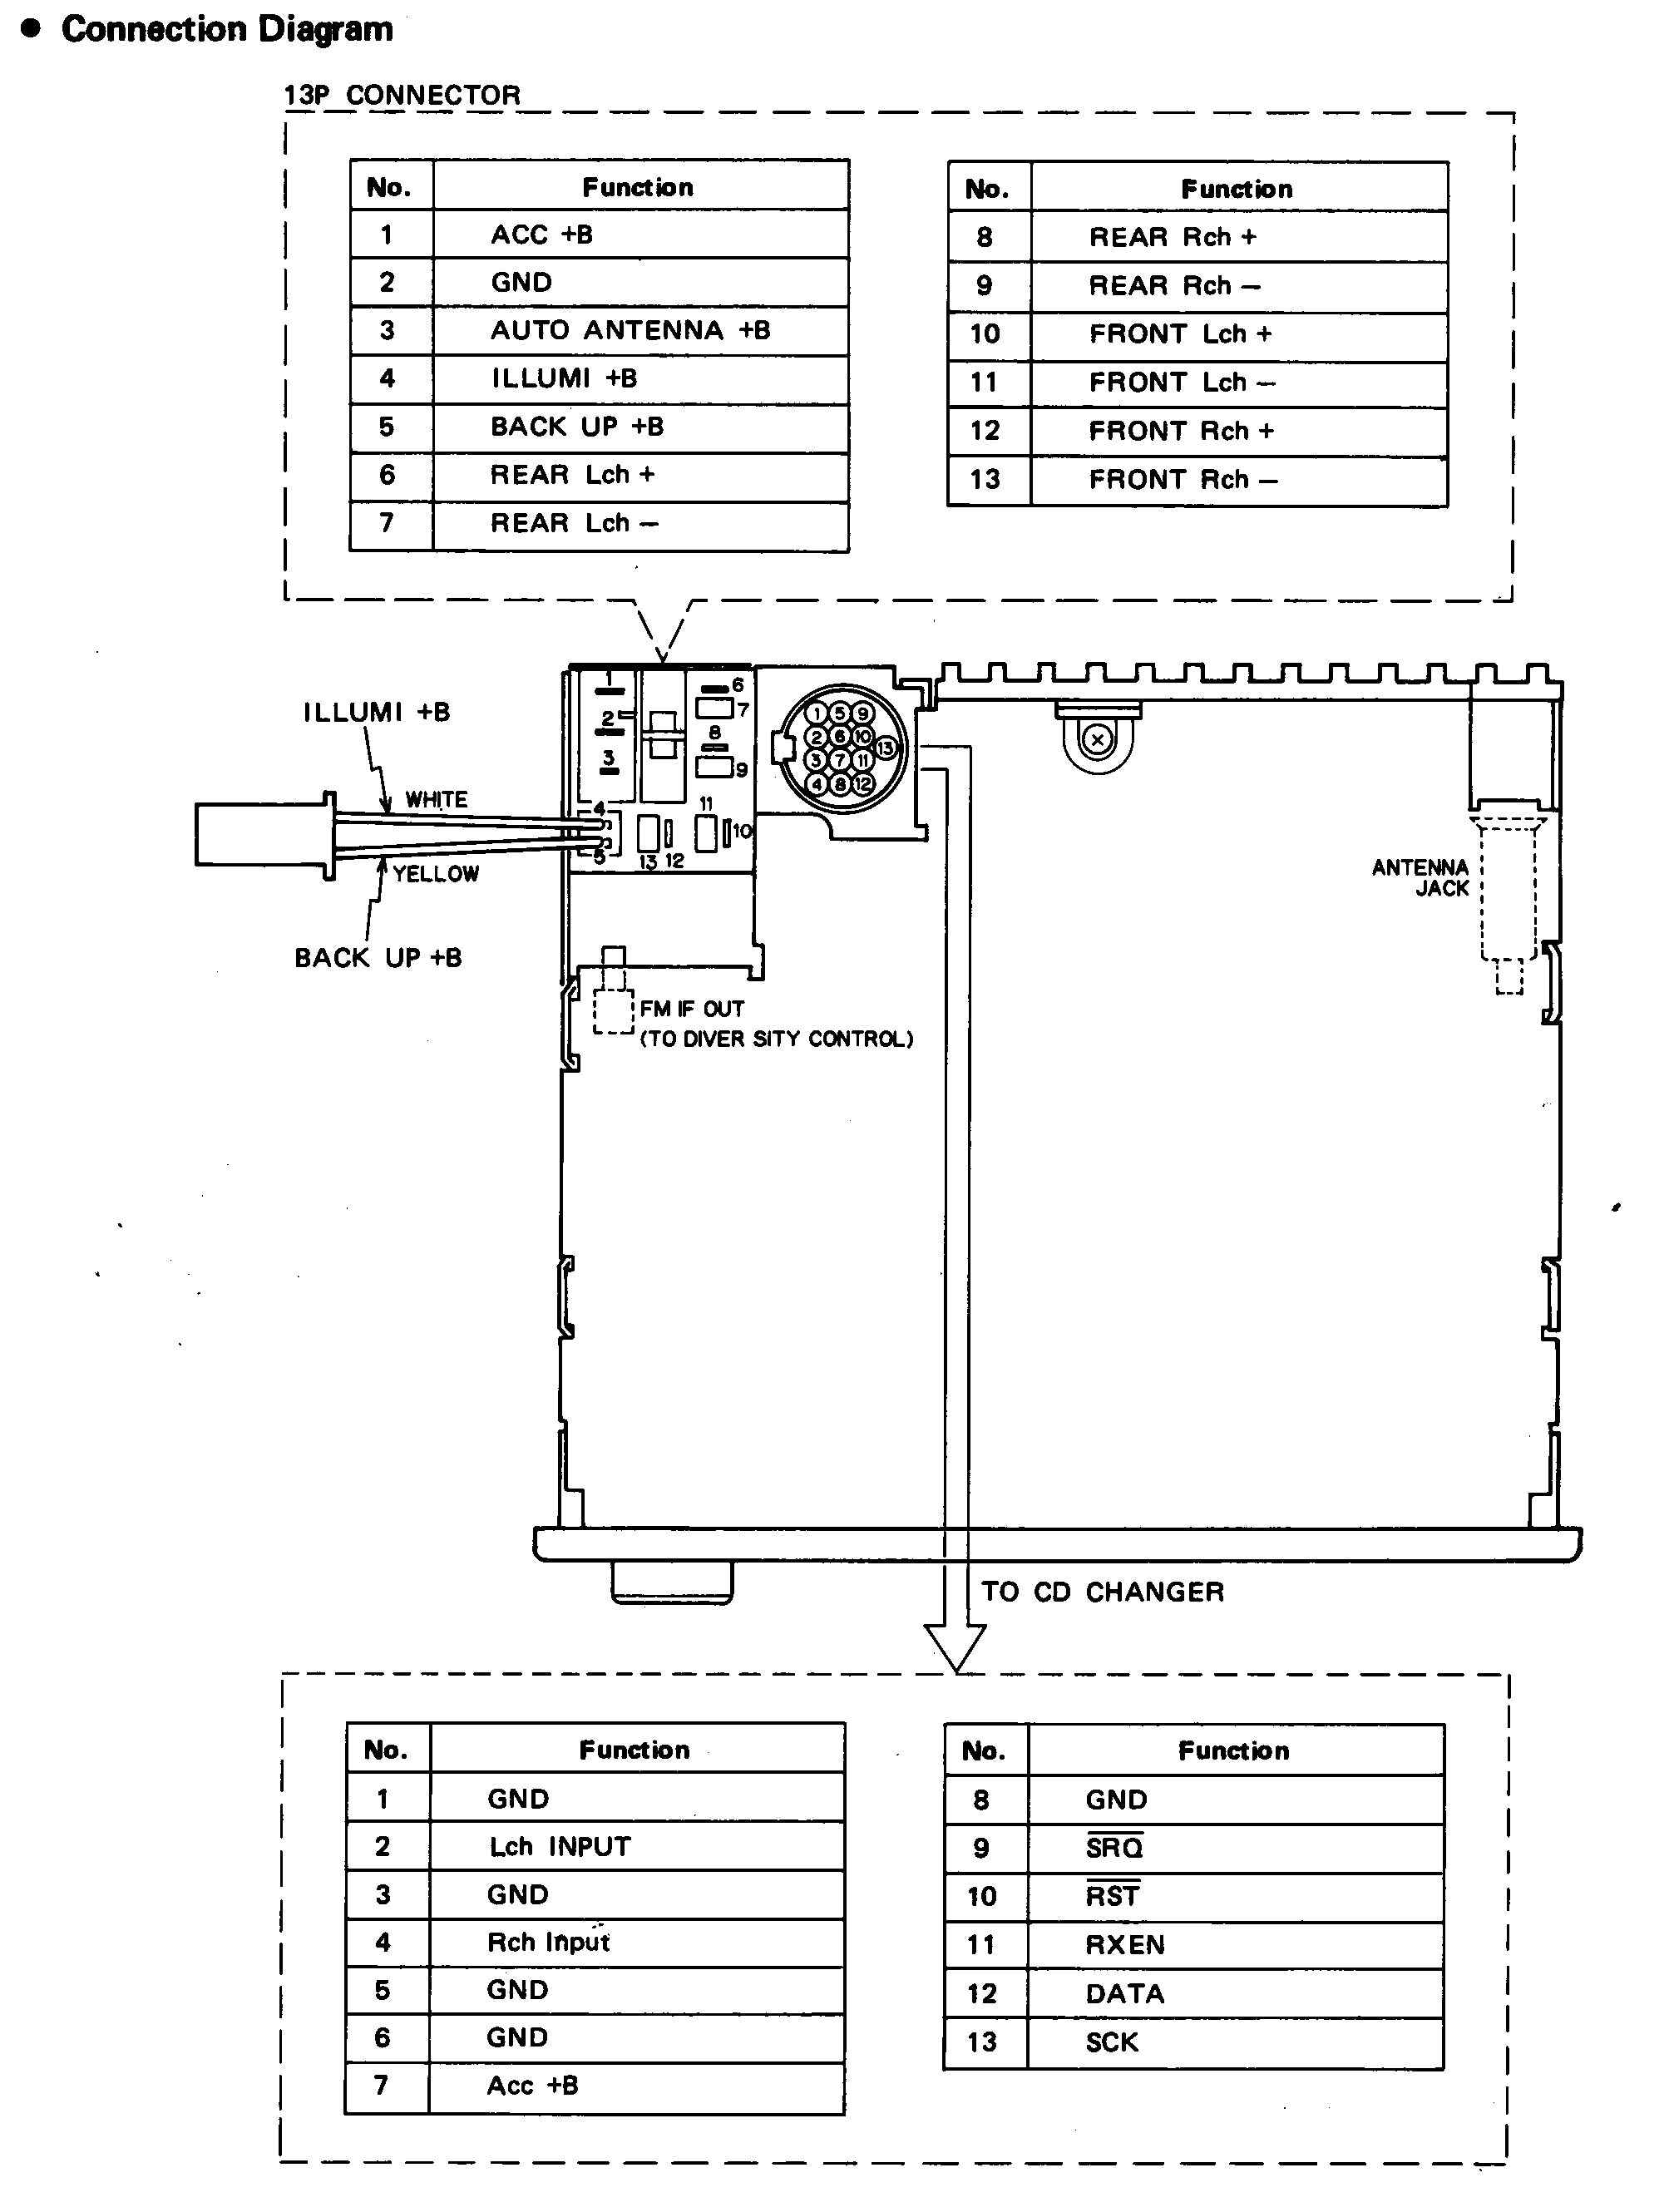 Wiring Harness Bose Speakers Guide And Troubleshooting Of Head Unit Car Stereo Diagrams Detailed Diagram Rh 7 6 Ocotillo Paysage Com 2003 Chevy Tahoe Amplifier